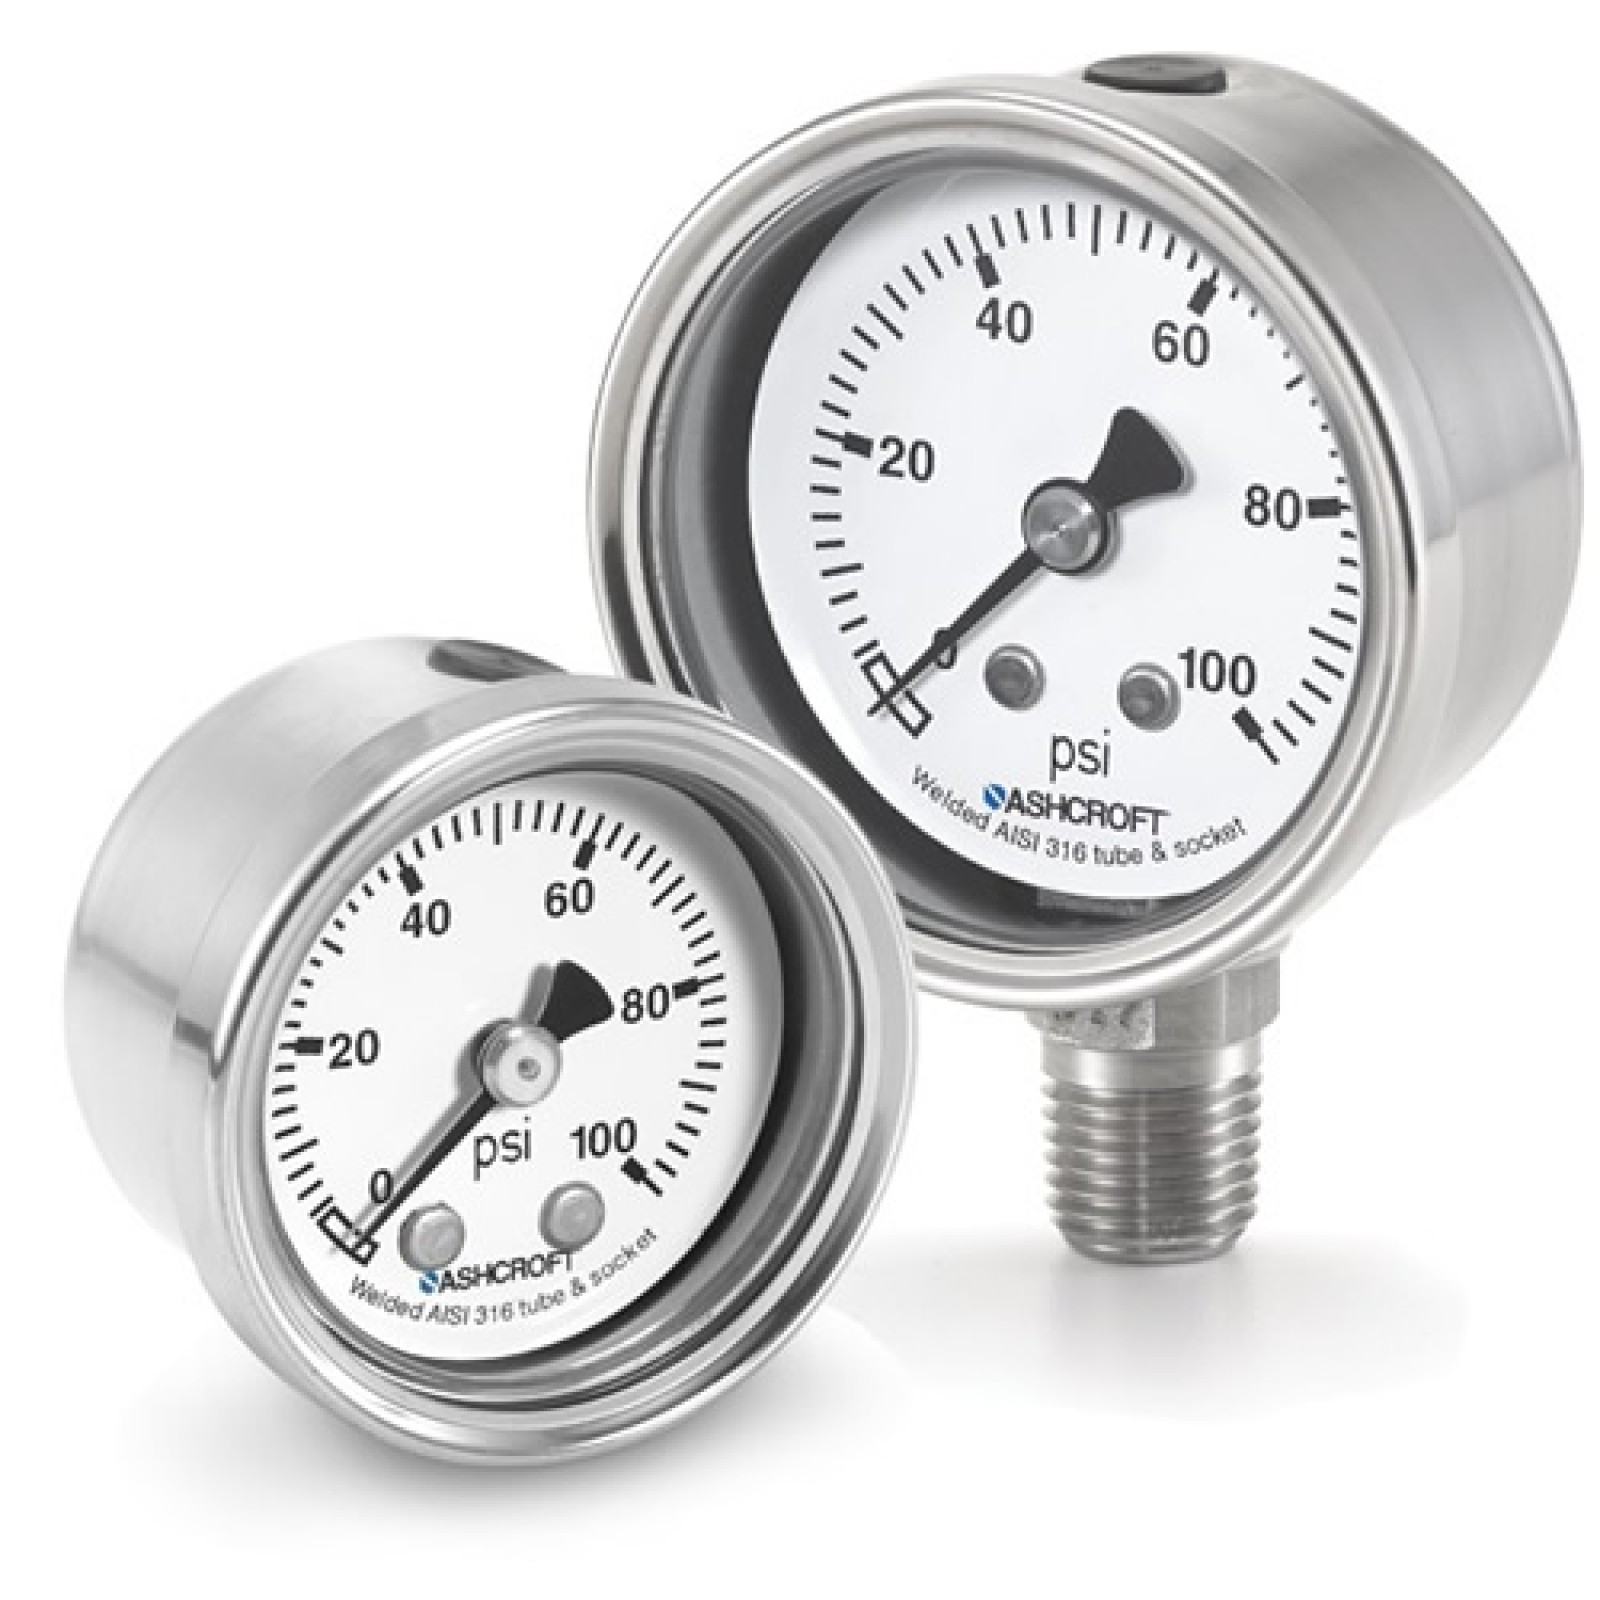 "63 1008S 02B XLL 200#/KP - Pressure Gauge, 63mm stainless 1/4"" NPT Back conn & Case, Plus Performance, 0/200 psi"